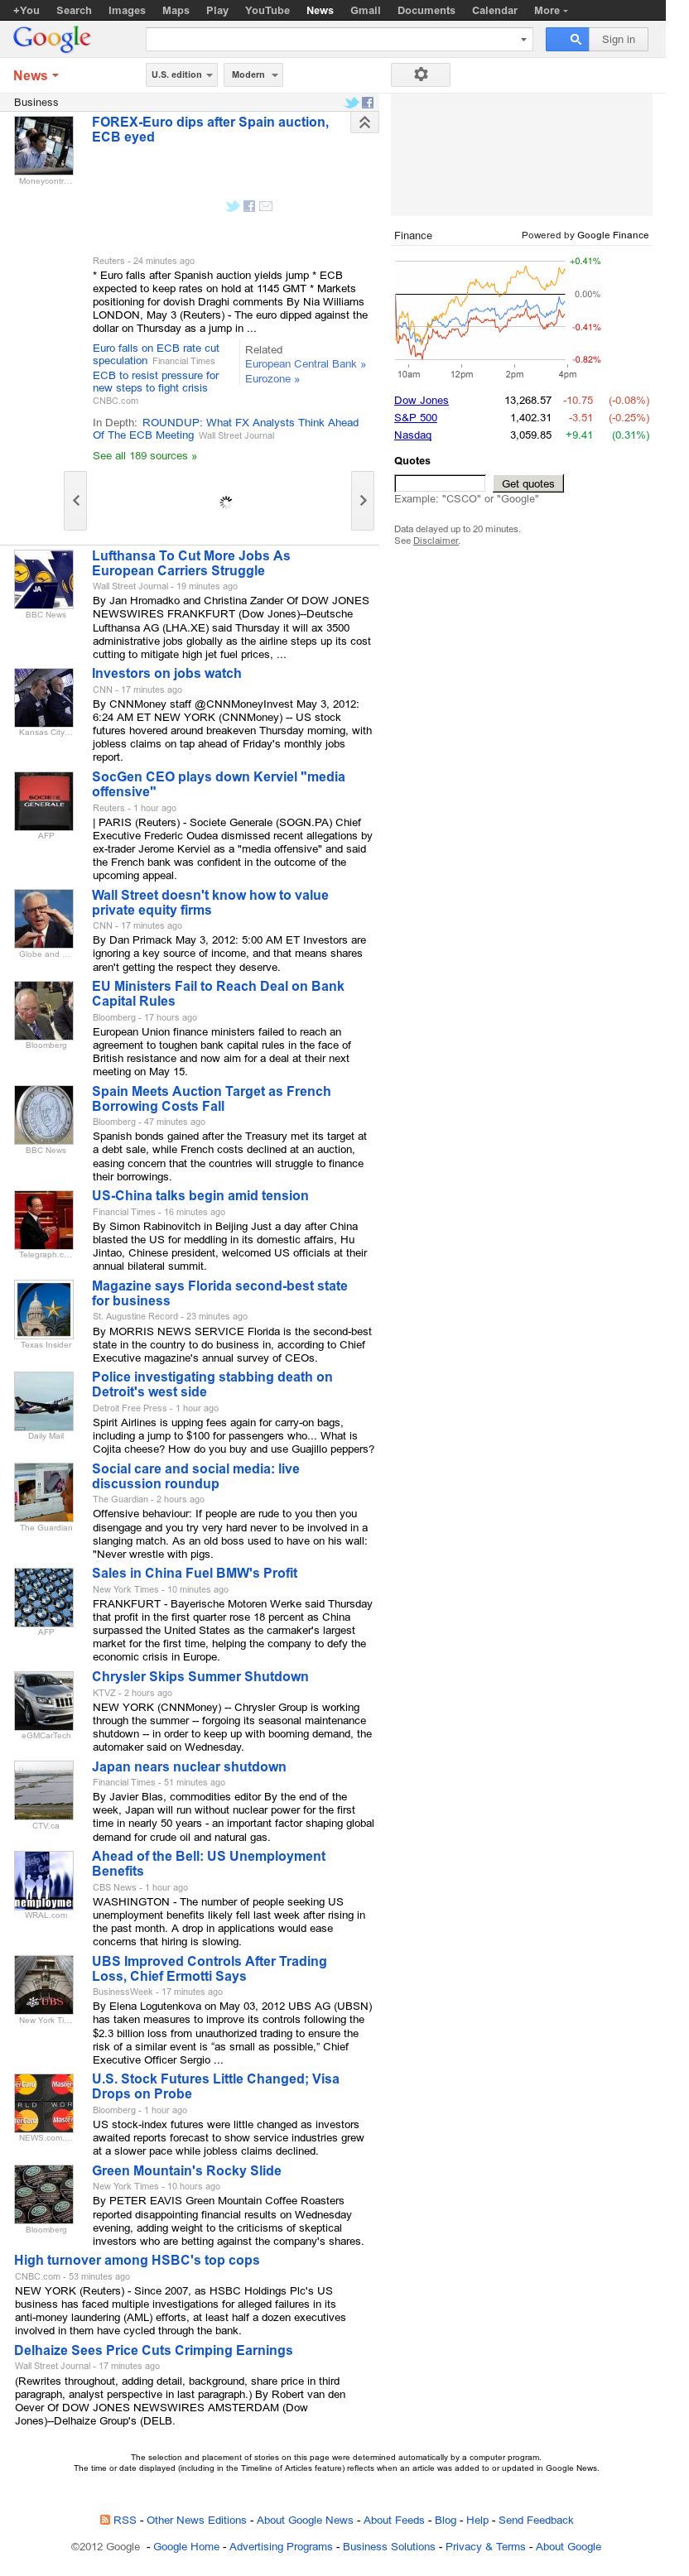 Google News: Business at Thursday May 3, 2012, 11:06 a.m. UTC